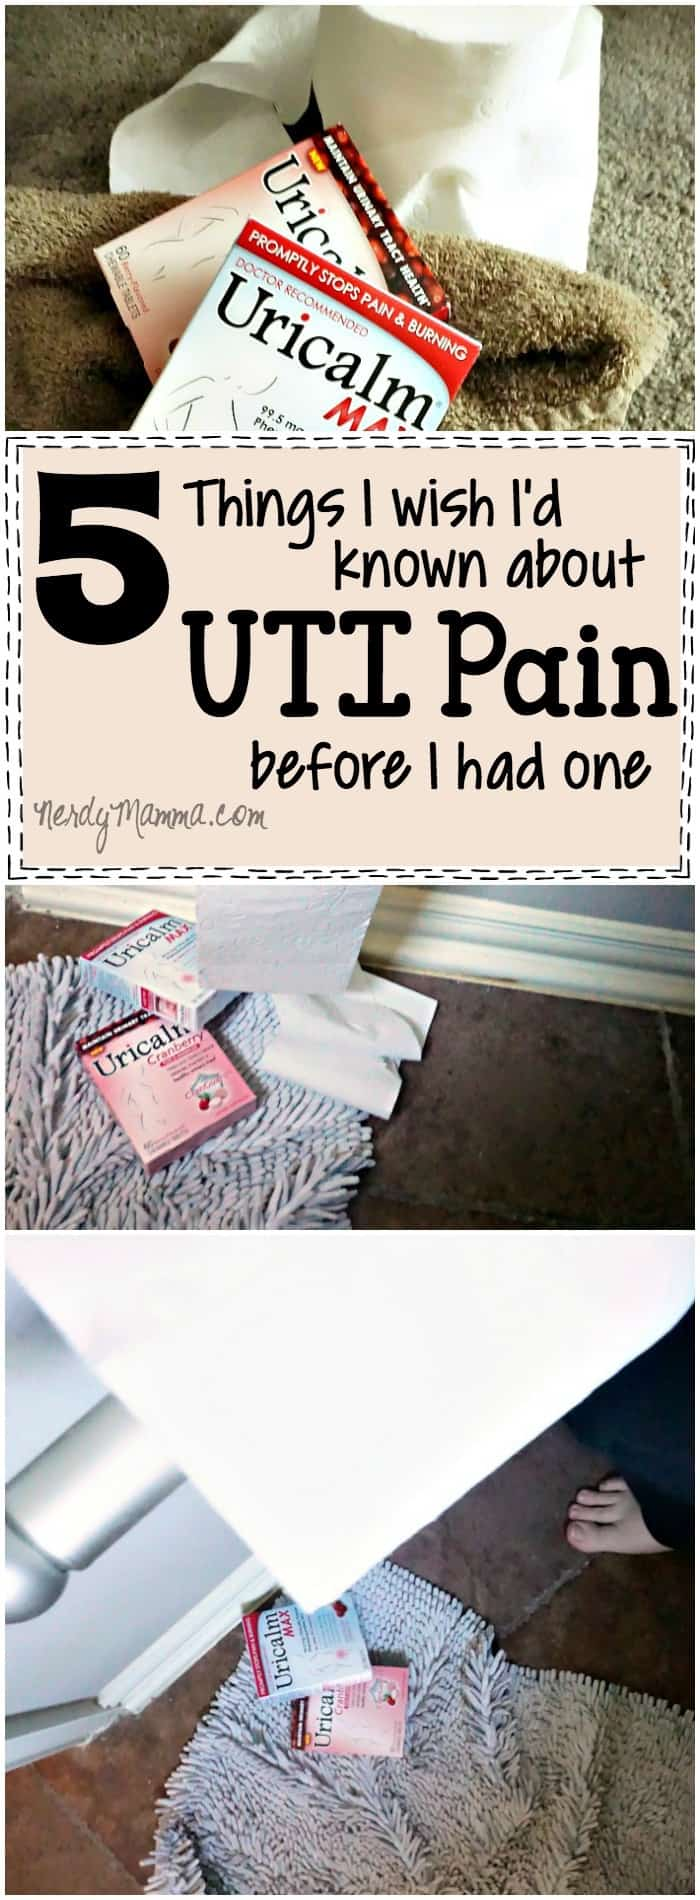 This is the most honest I've heard anyone be about UTI pain. Great to keep for remembering to talk to my daughters...